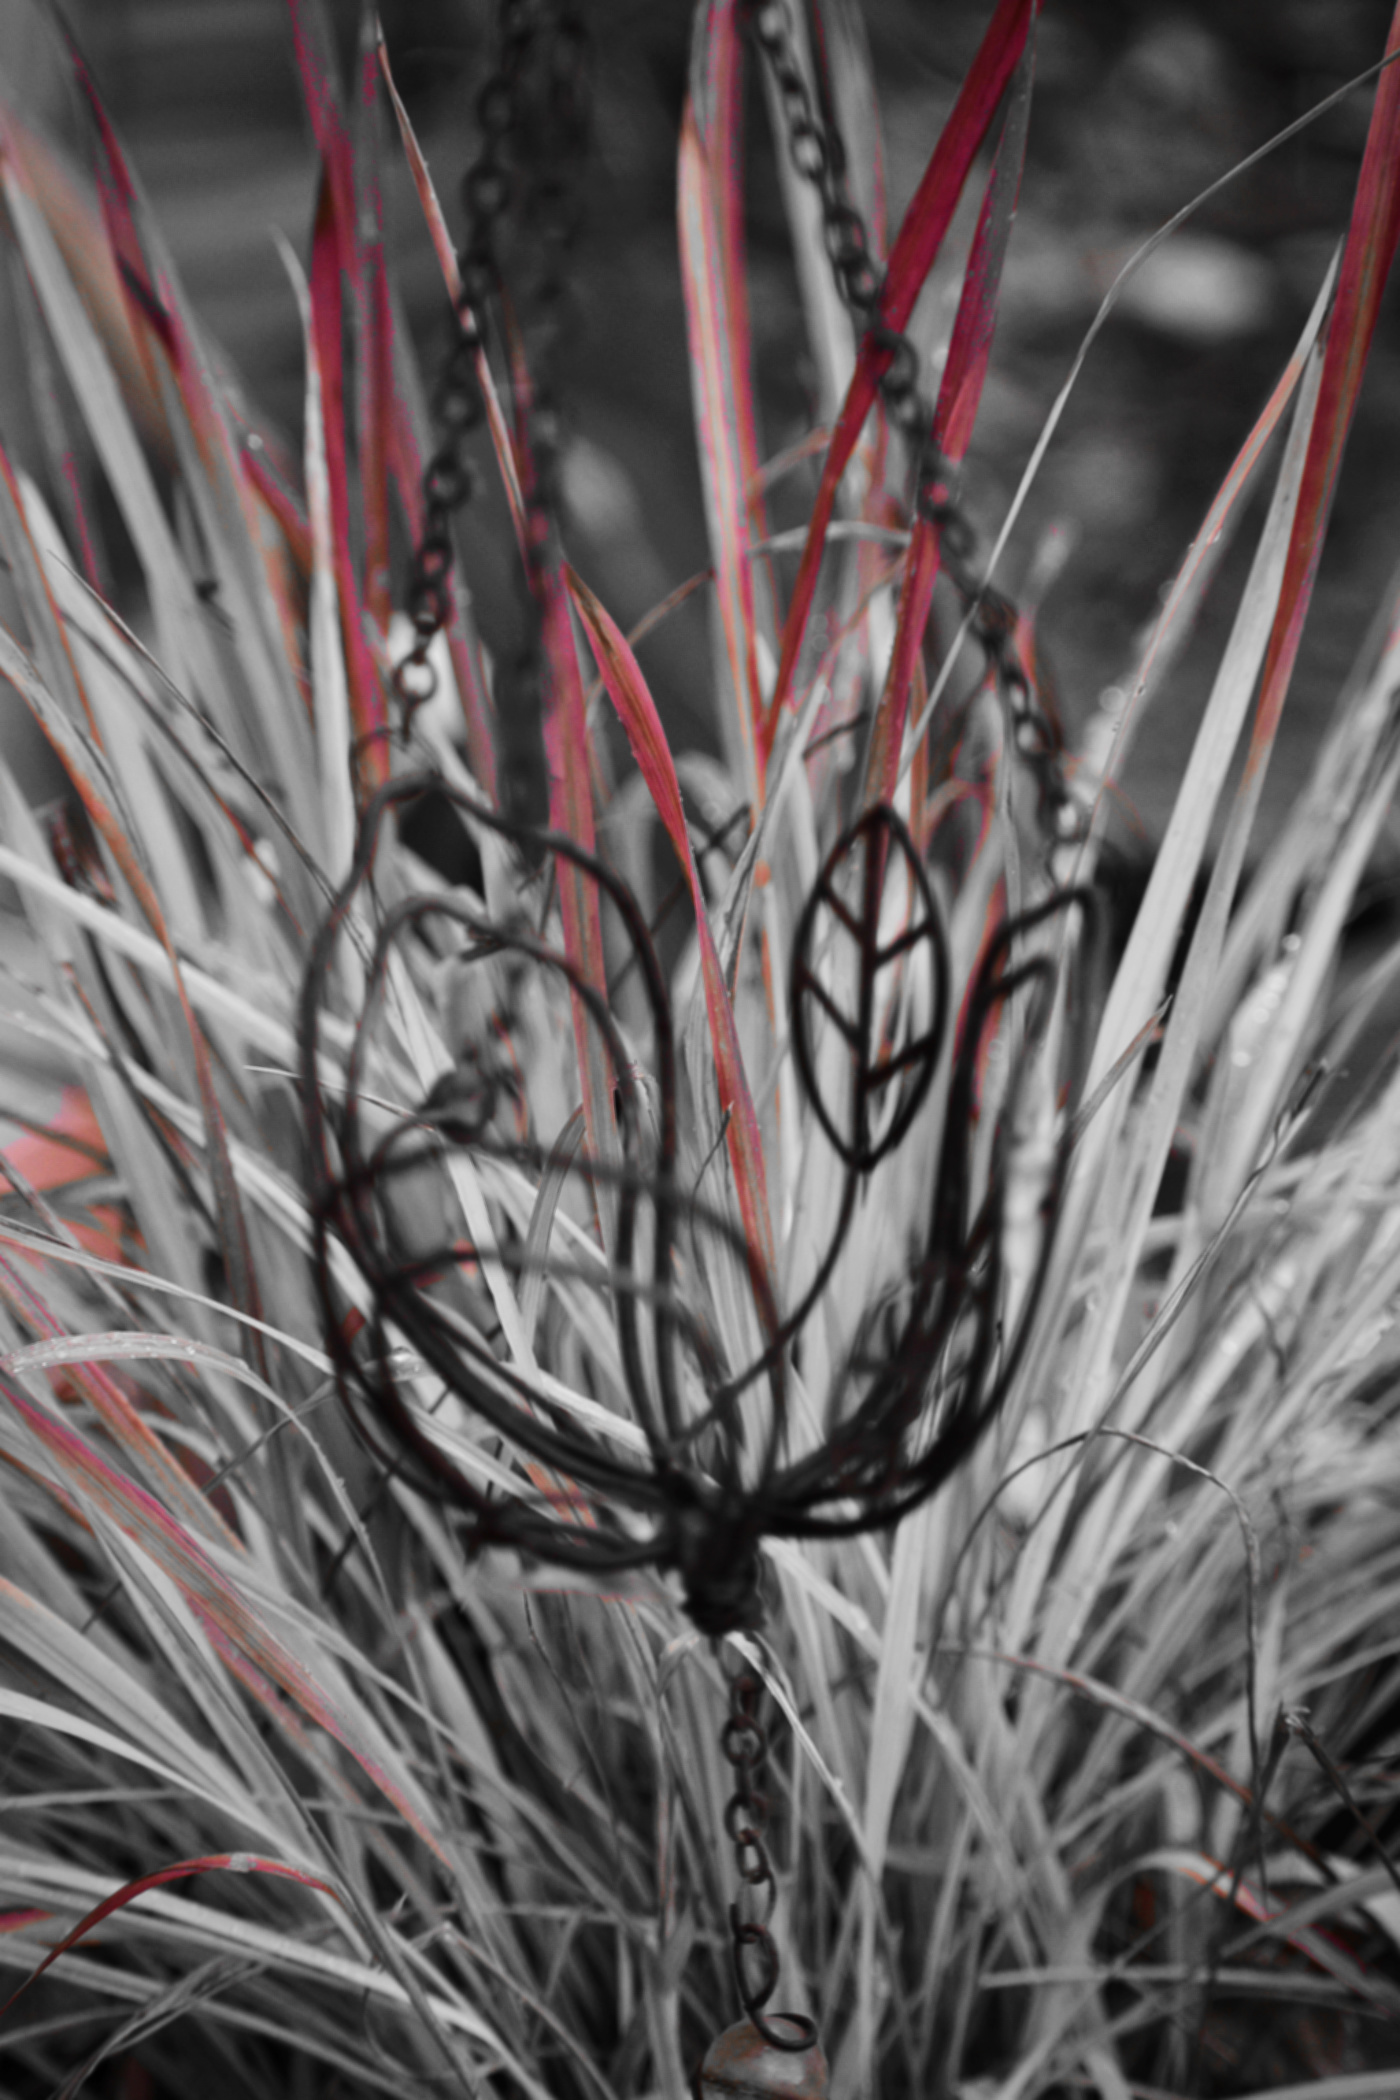 japanese blood grass in red white and black - thetemenosjournal.com